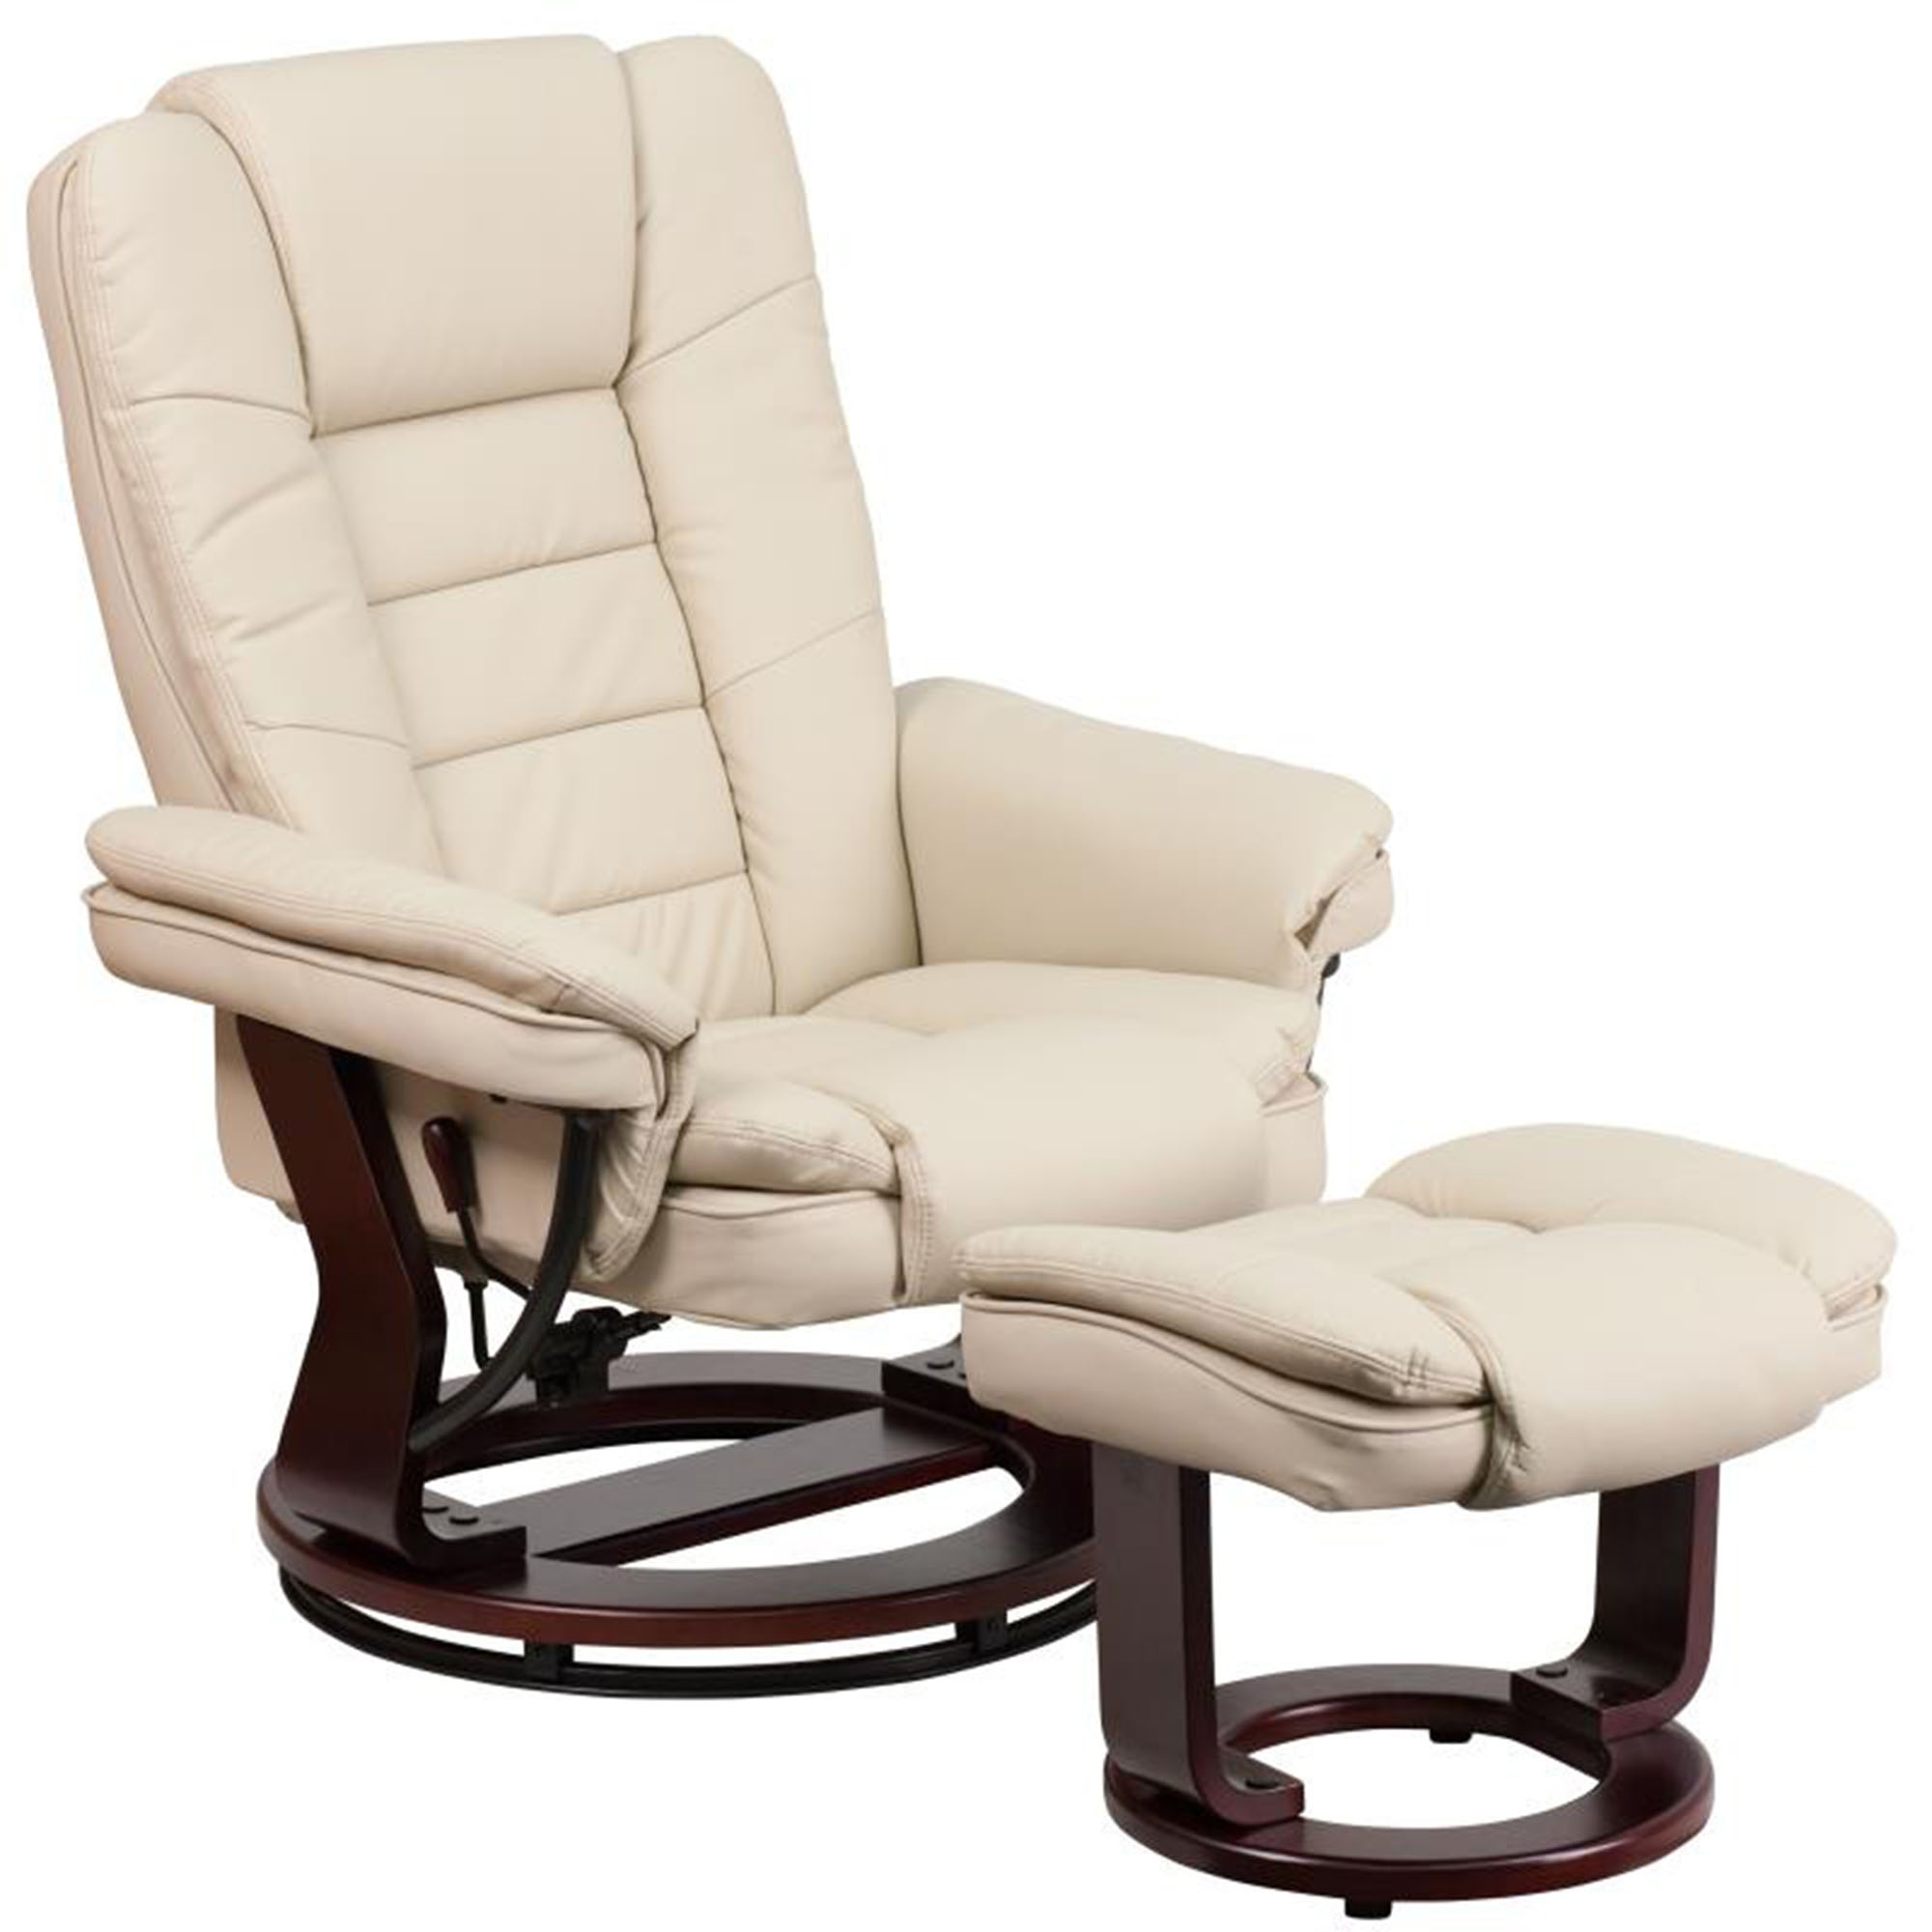 Offex Contemporary Beige Leather Recliner And Ottoman With Swiveling Mahogany Wood Base [BT-7818-BGE-GG]